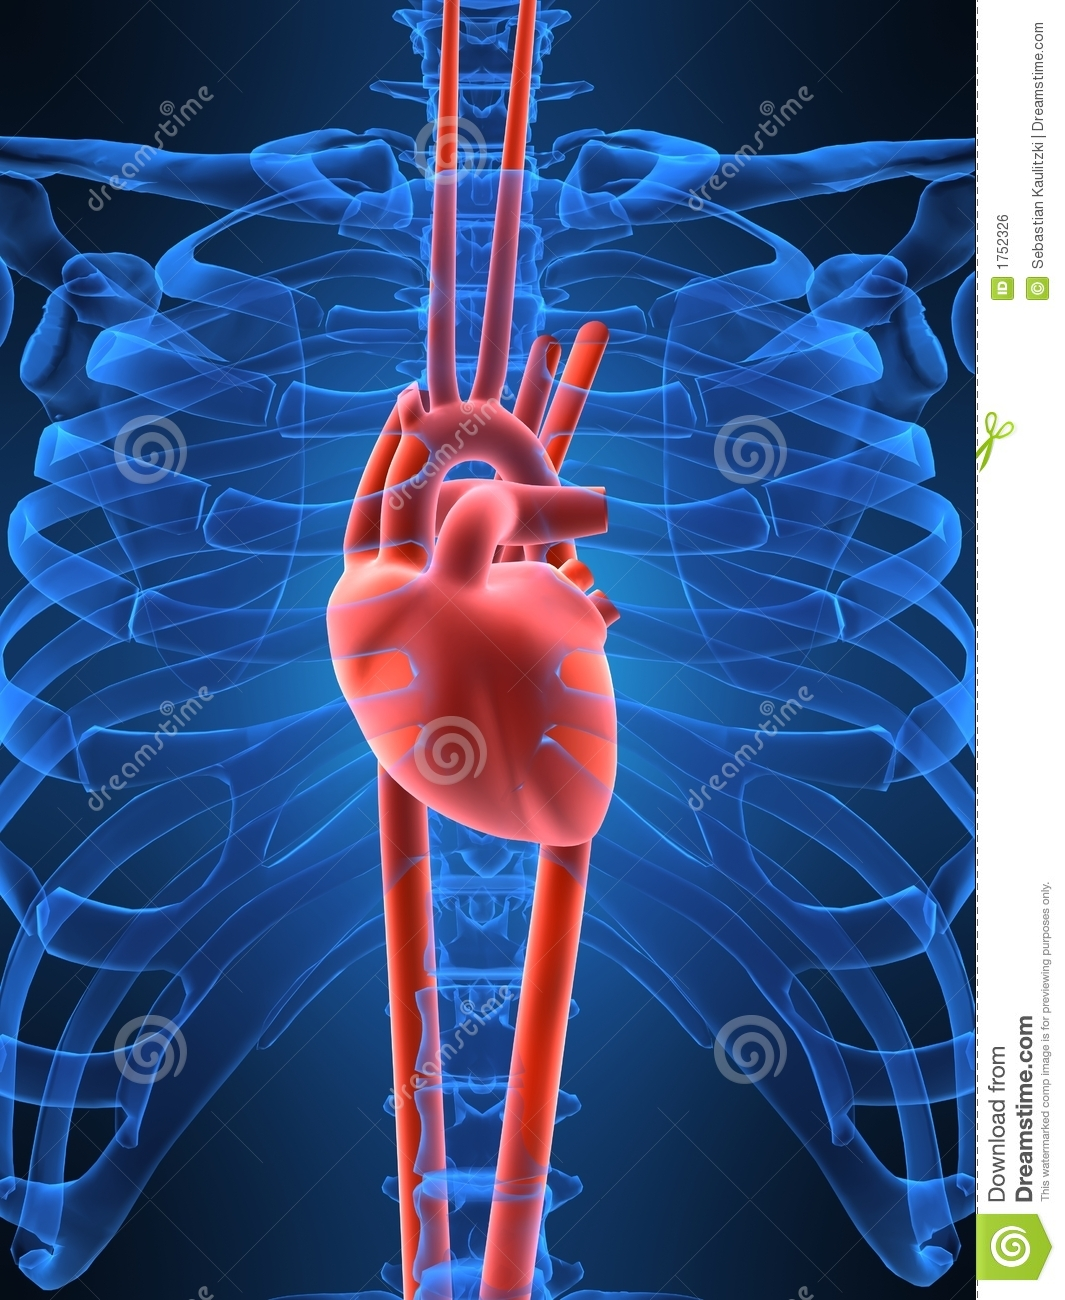 Human heart stock illustration. Image of rate, education ...